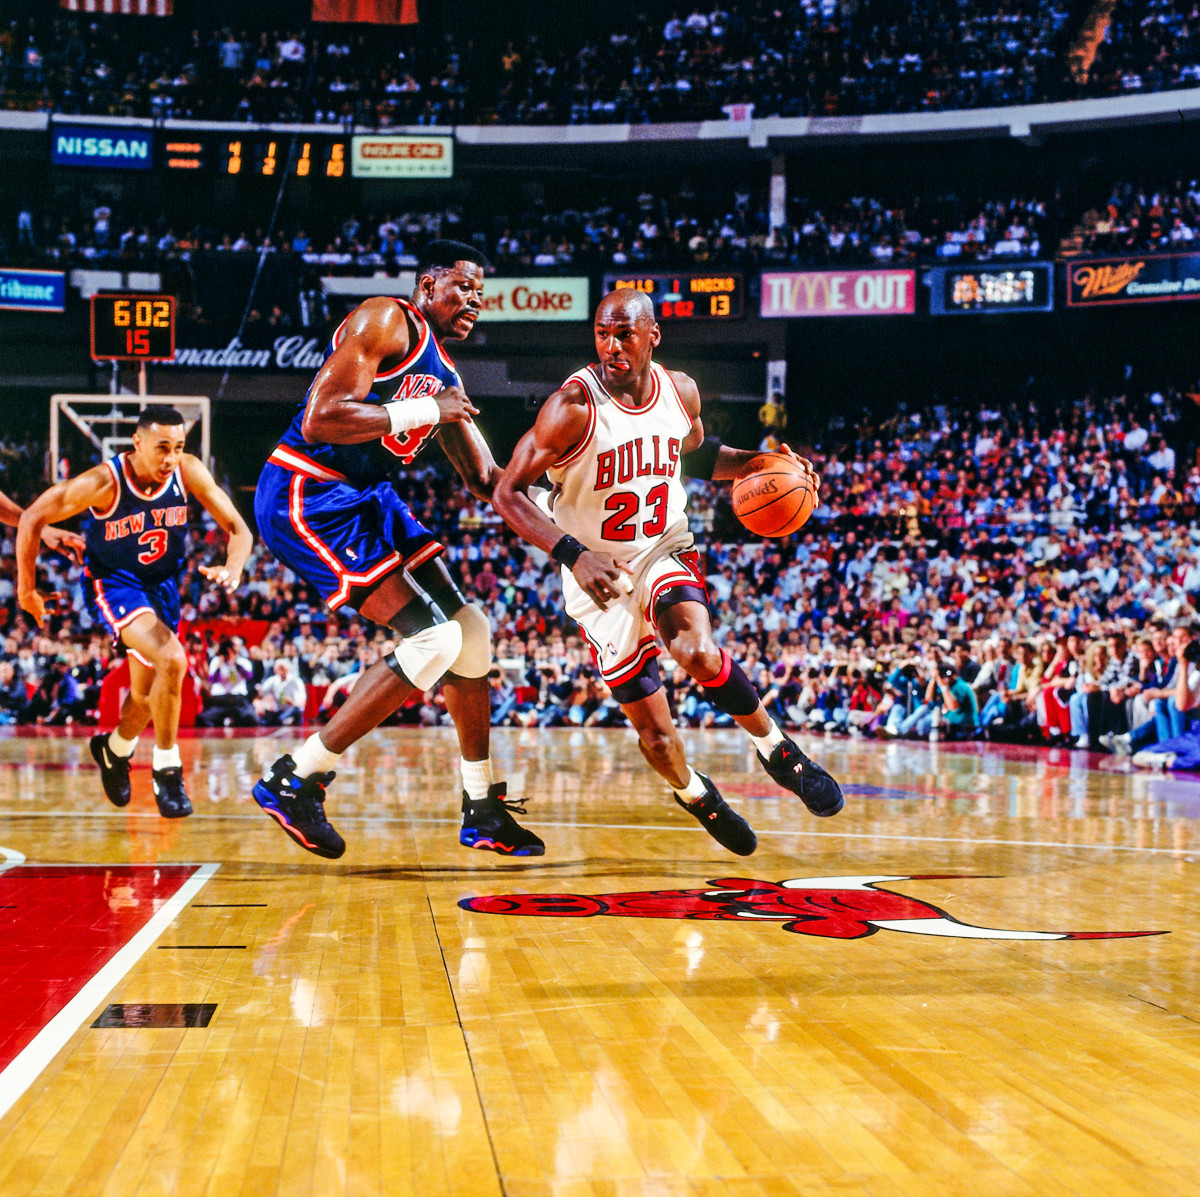 MJ and the Bulls, back in Chicago after digging a 2-0 New York hole in 1993.